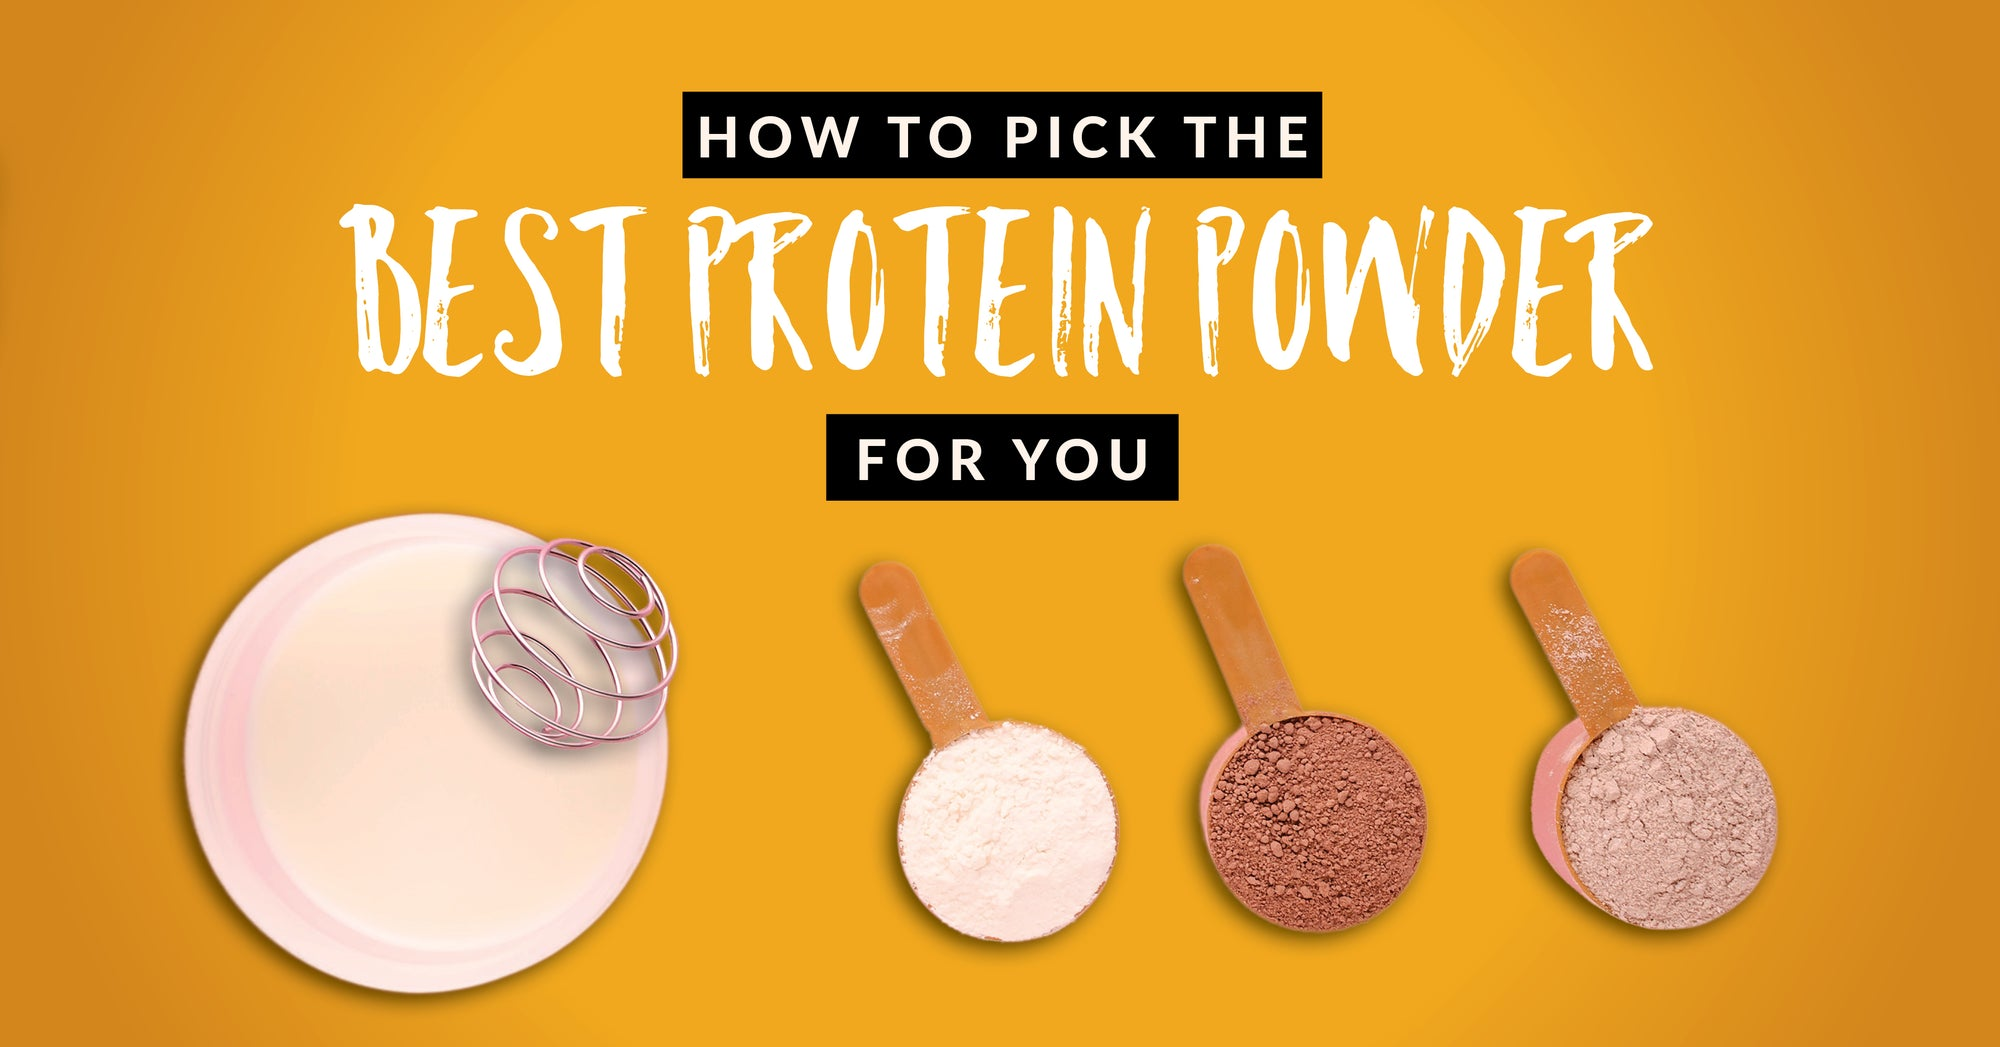 How to Pick the Best Protein Powder for You